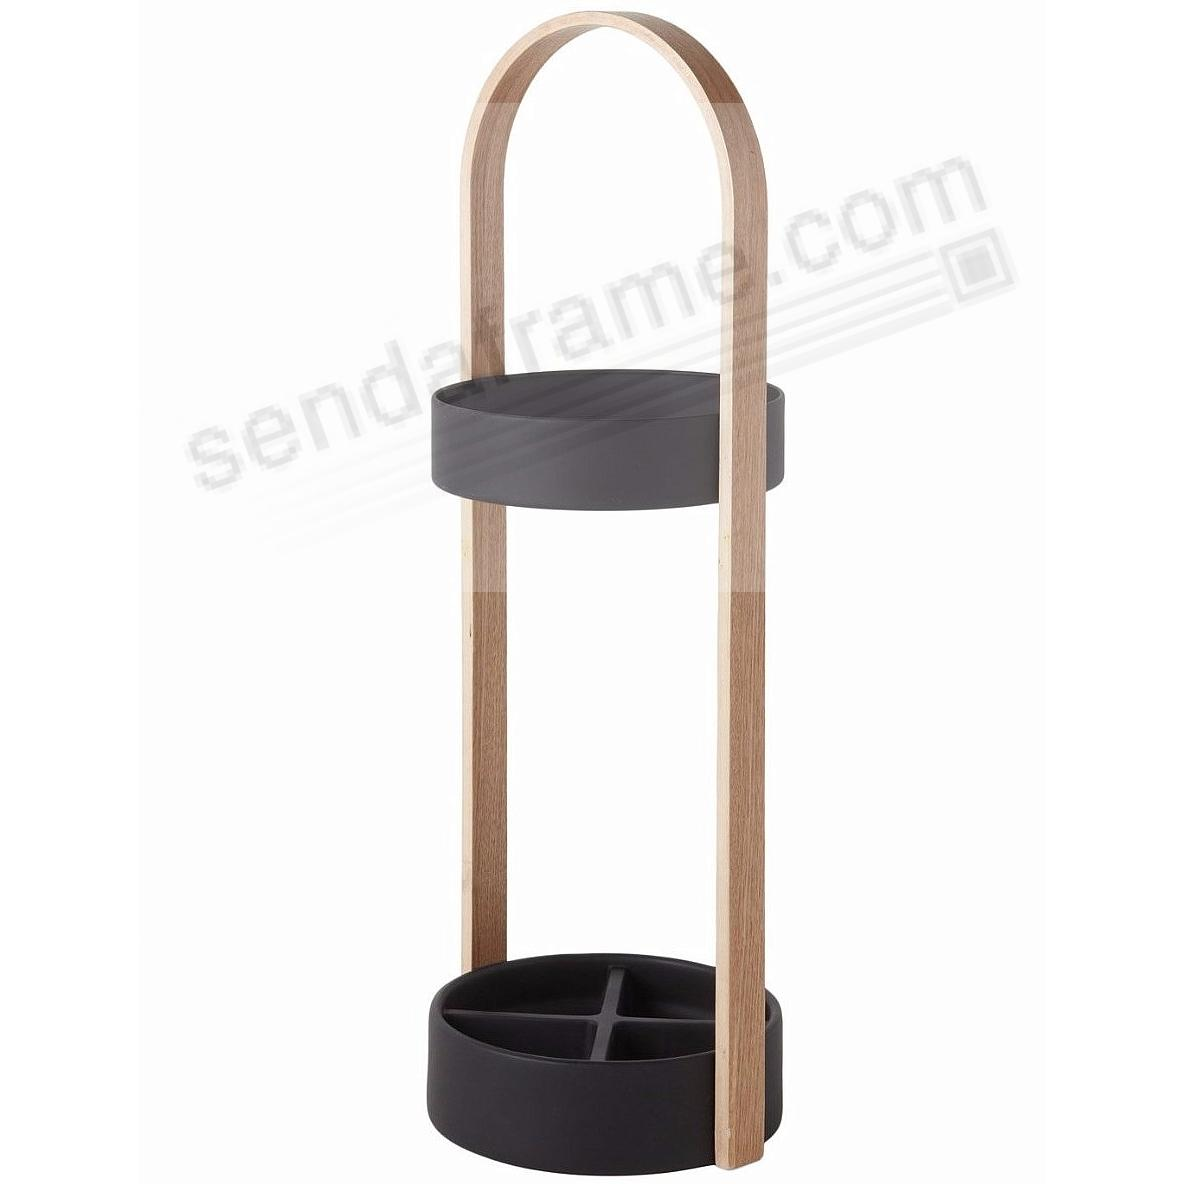 The Original HUB UMBRELLA STAND in Black and Natural by Umbra®